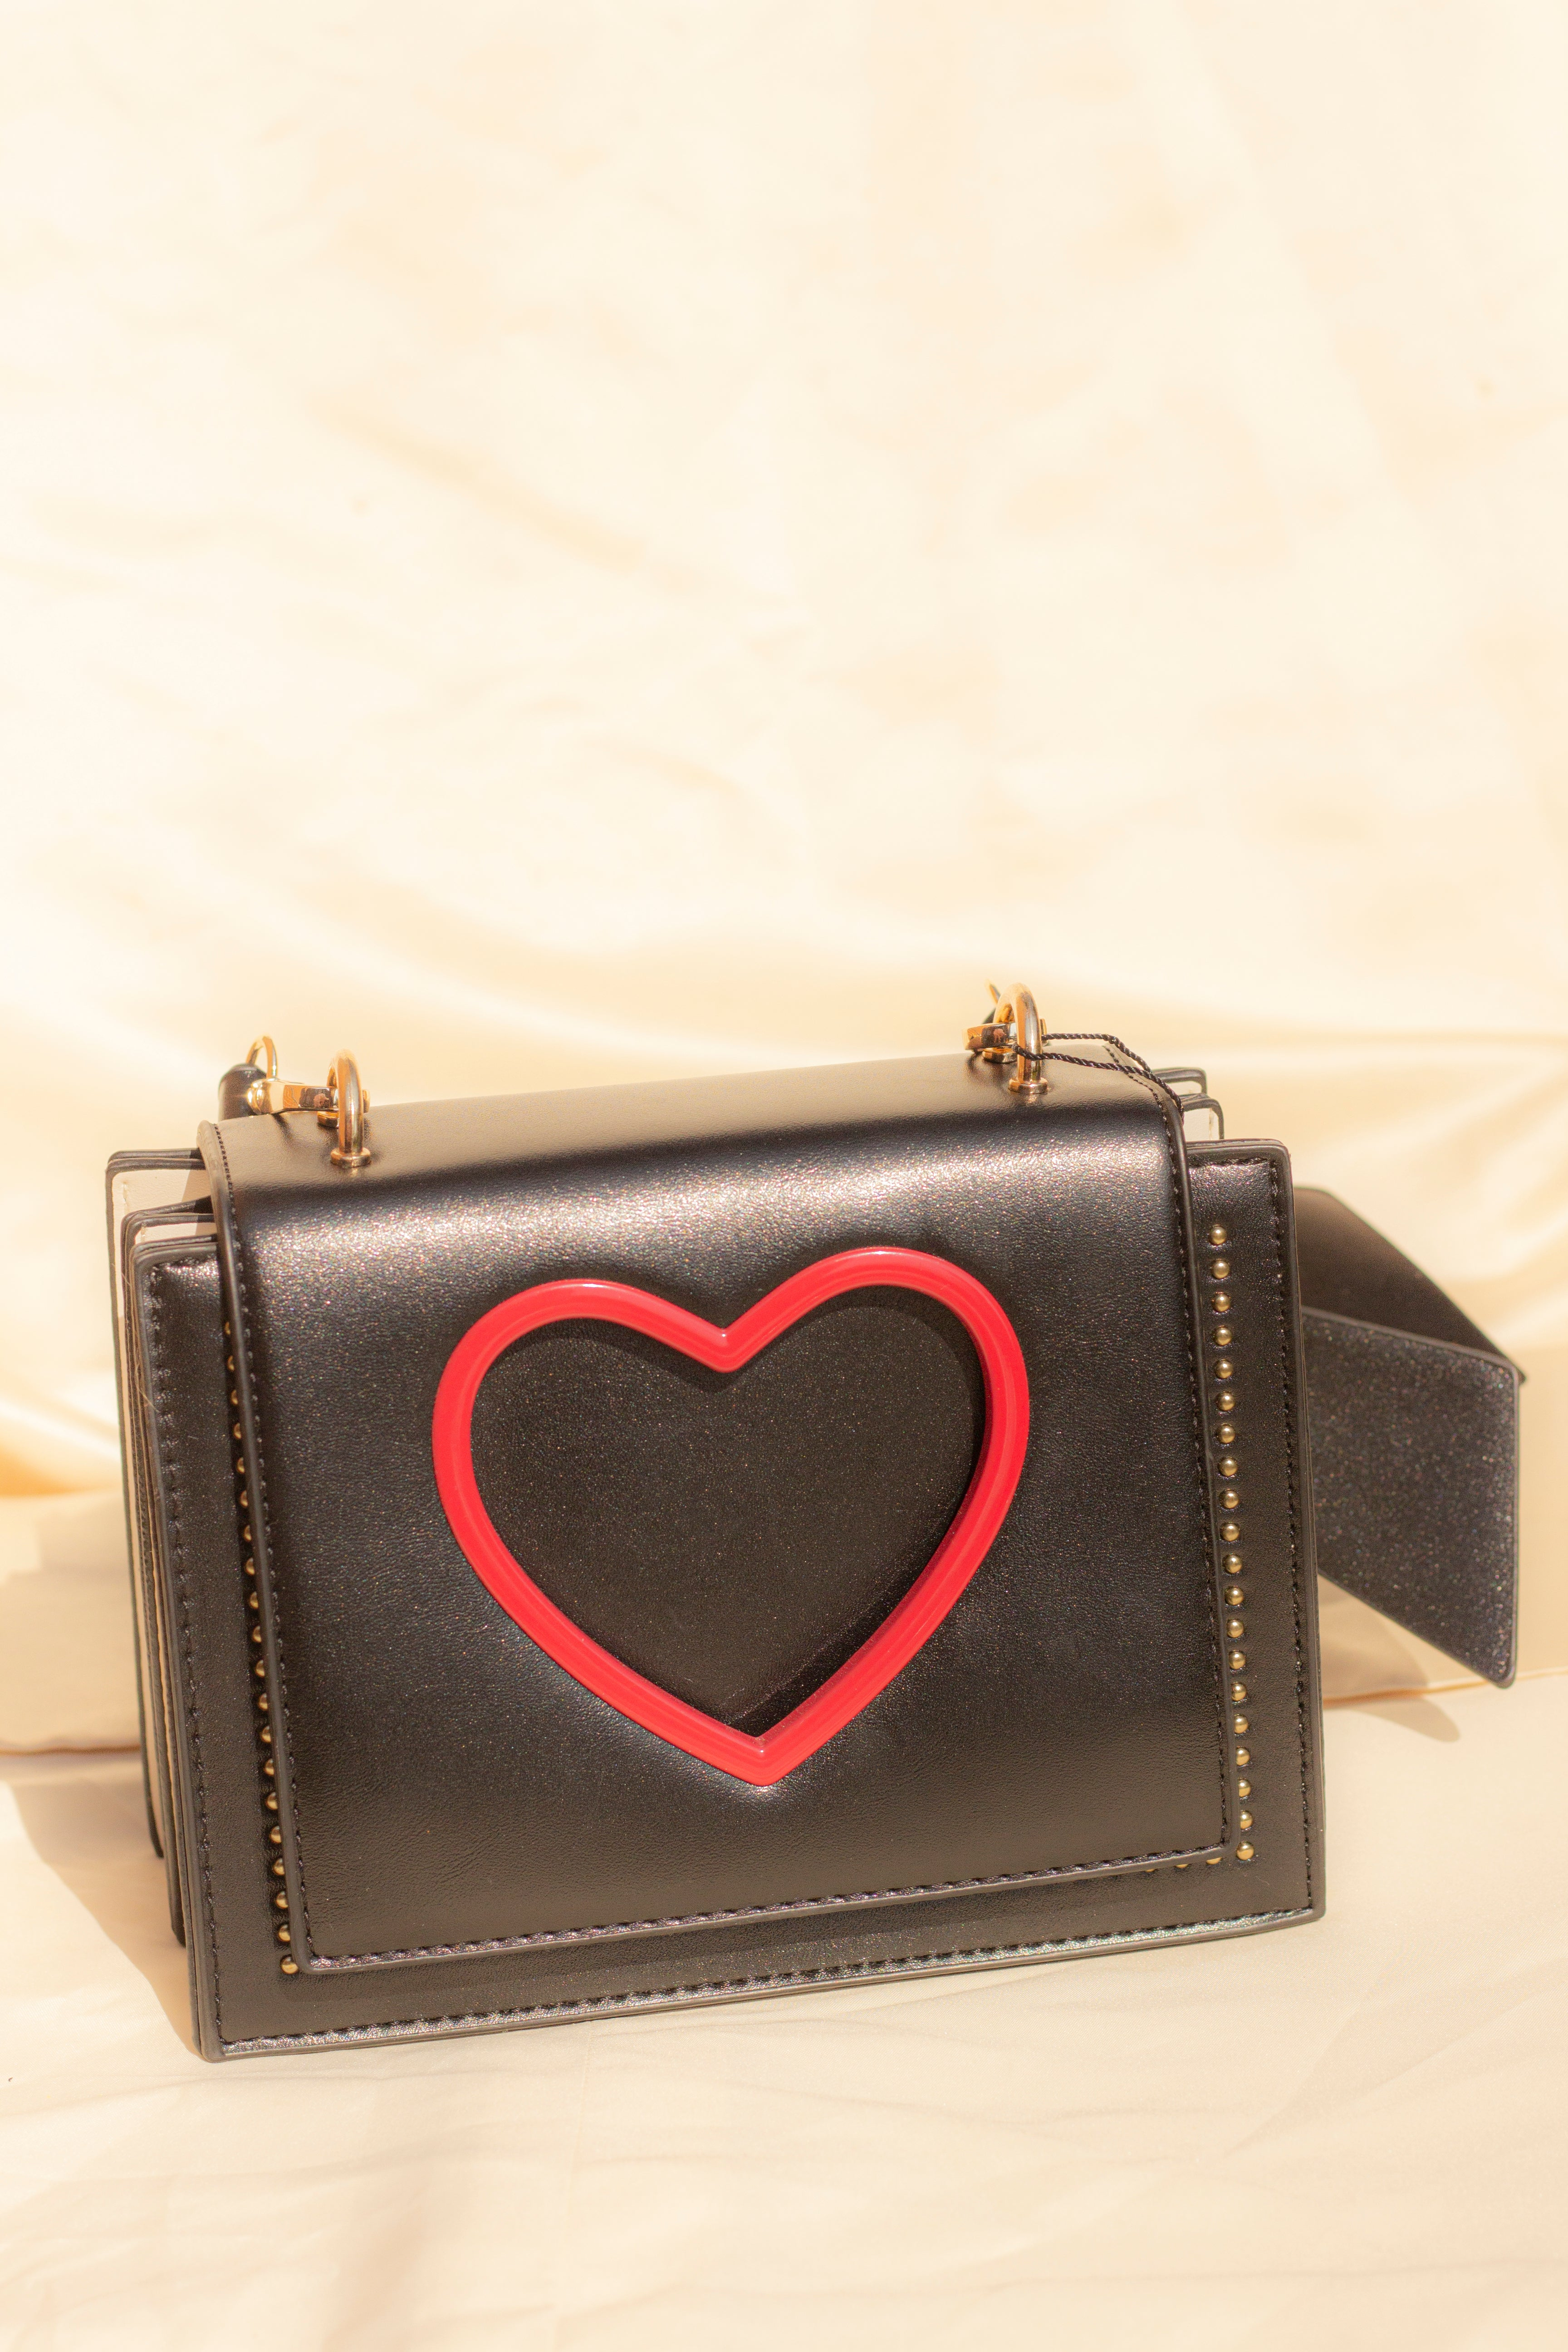 Heart Cut Out Side Satchel - Sugar + Style